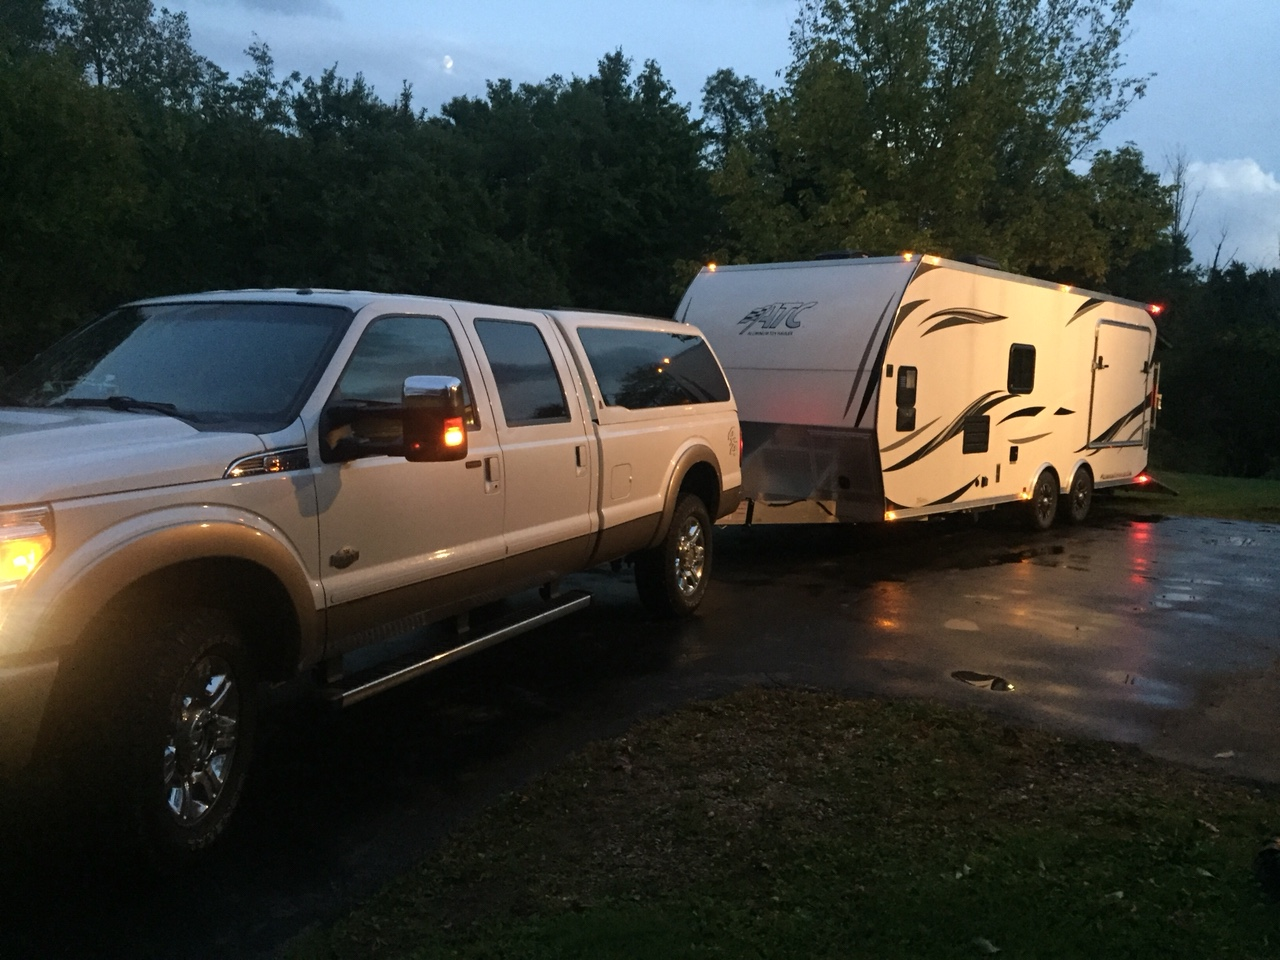 Good lightweight toy haulers/campers - Trucks, Trailers, RV's & Toy